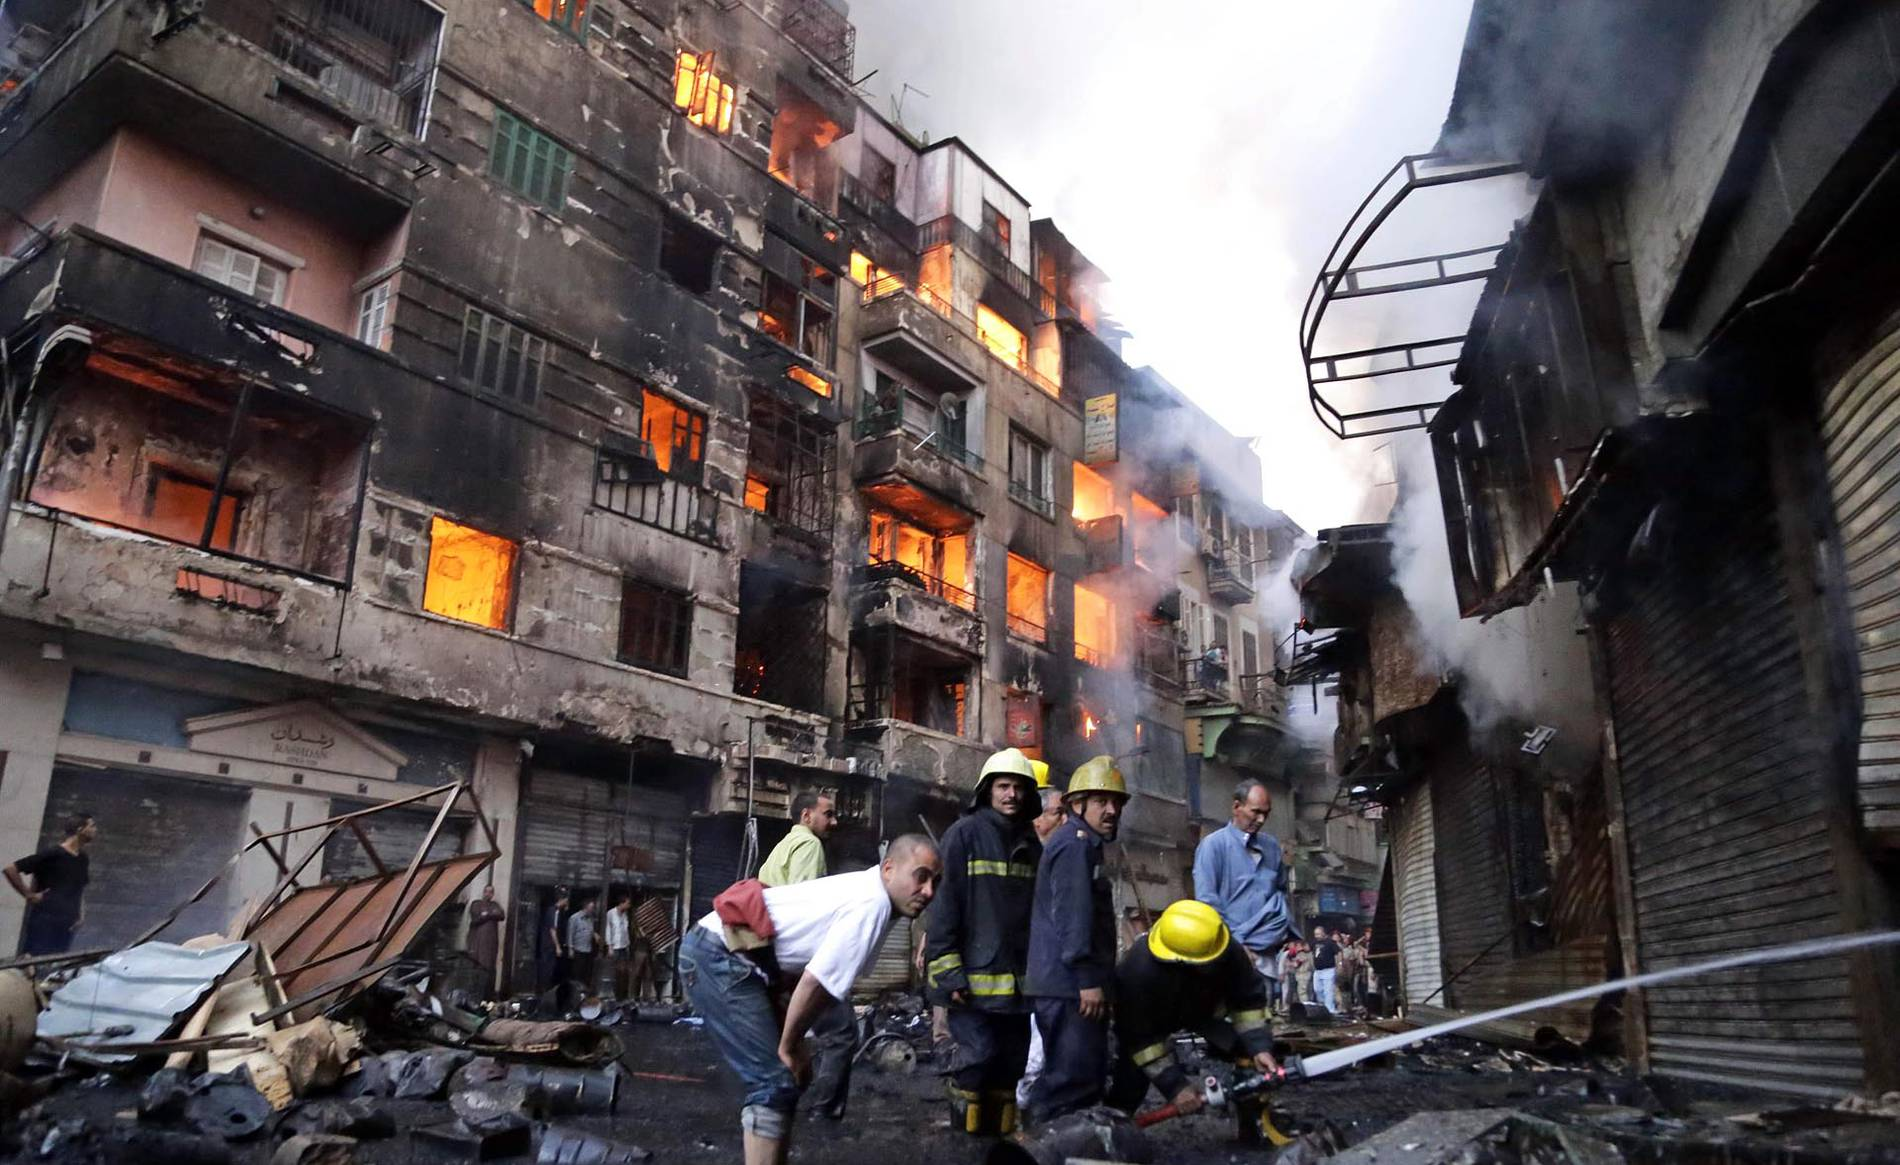 The fires continued on Monday in the buildings in Al-Rewaei while firefighters attempted it to put it off (Photo: AFP)